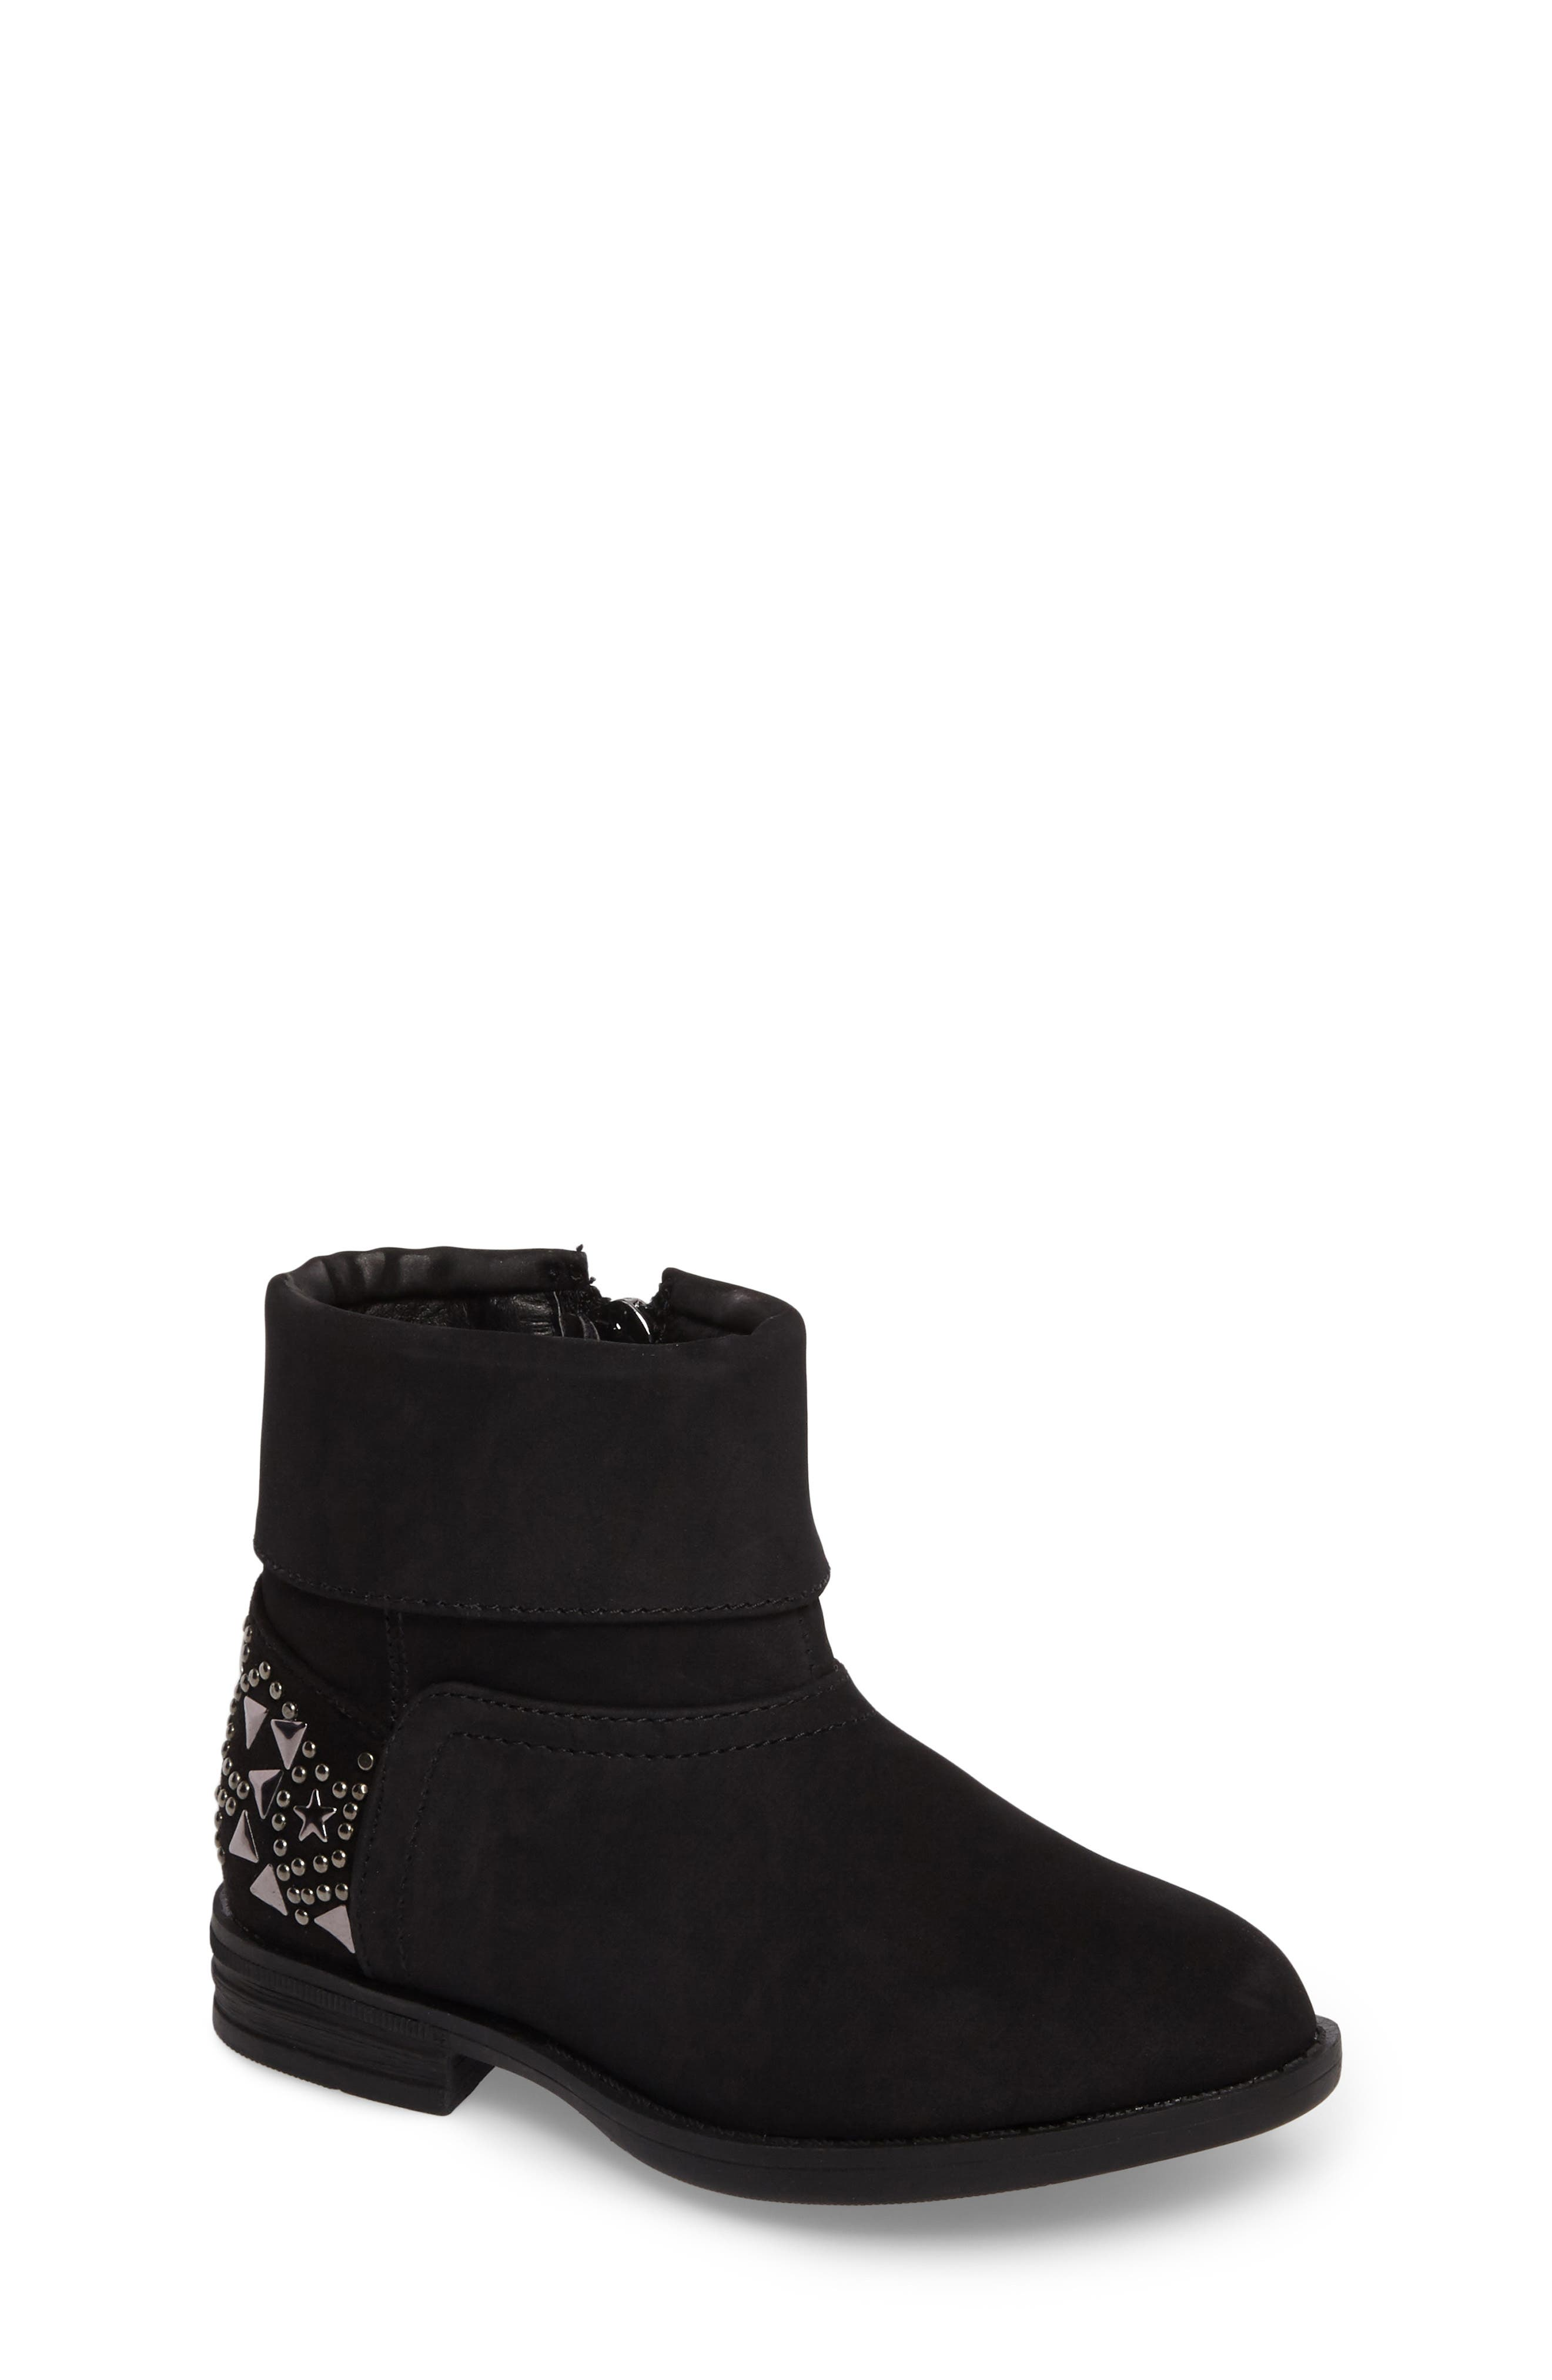 Wild Star Studded Bootie,                             Main thumbnail 1, color,                             Black